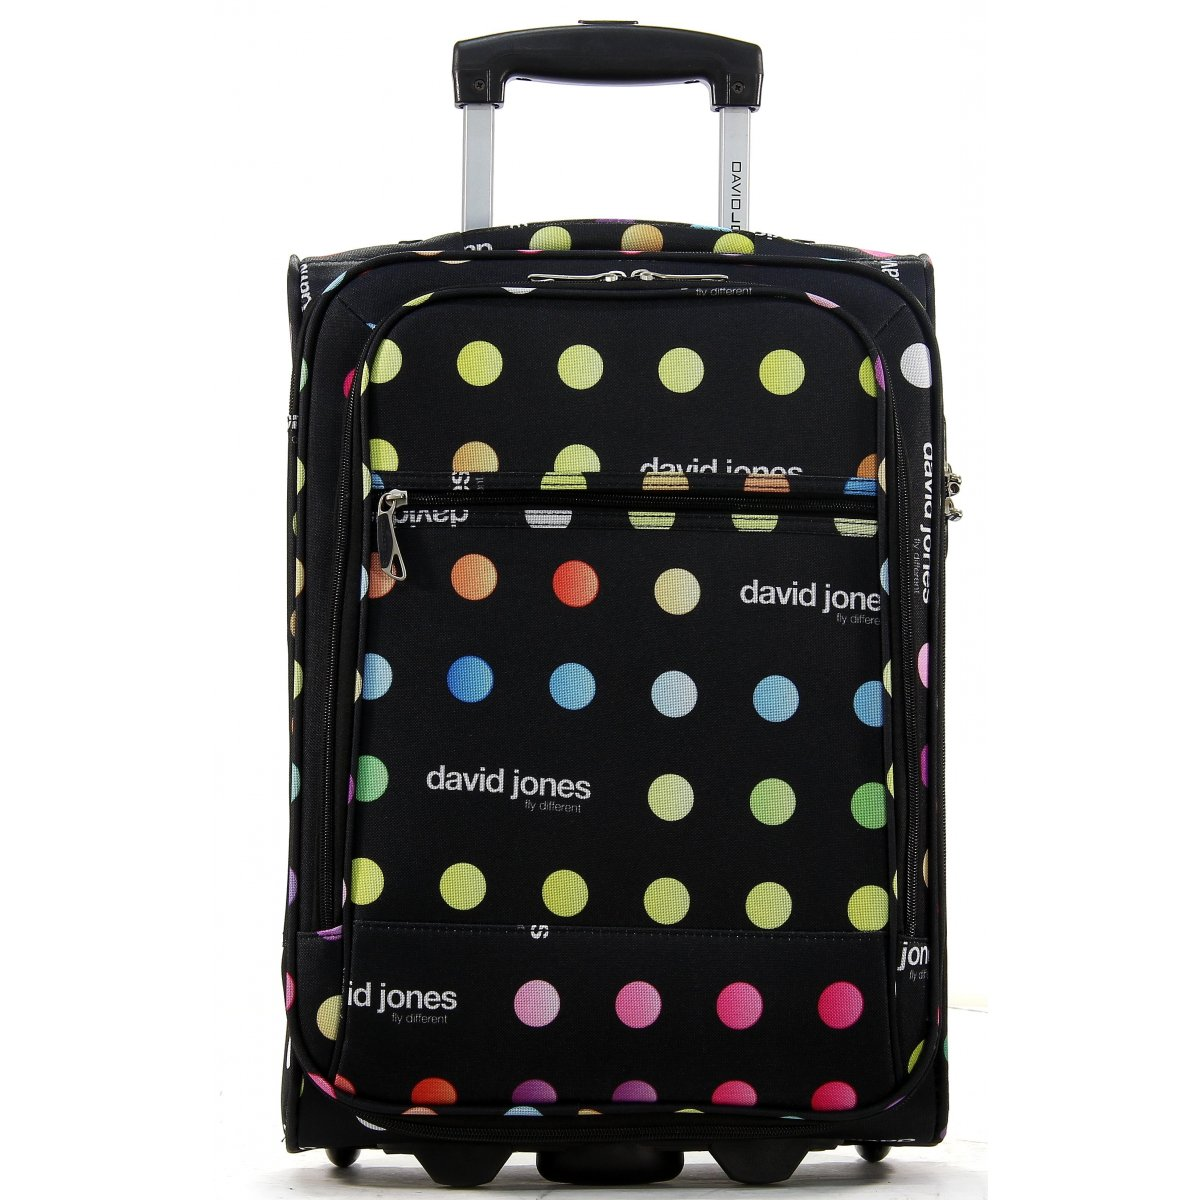 valise cabine ryanair david jones taille 50 cm r20031p couleur principale pois valise. Black Bedroom Furniture Sets. Home Design Ideas